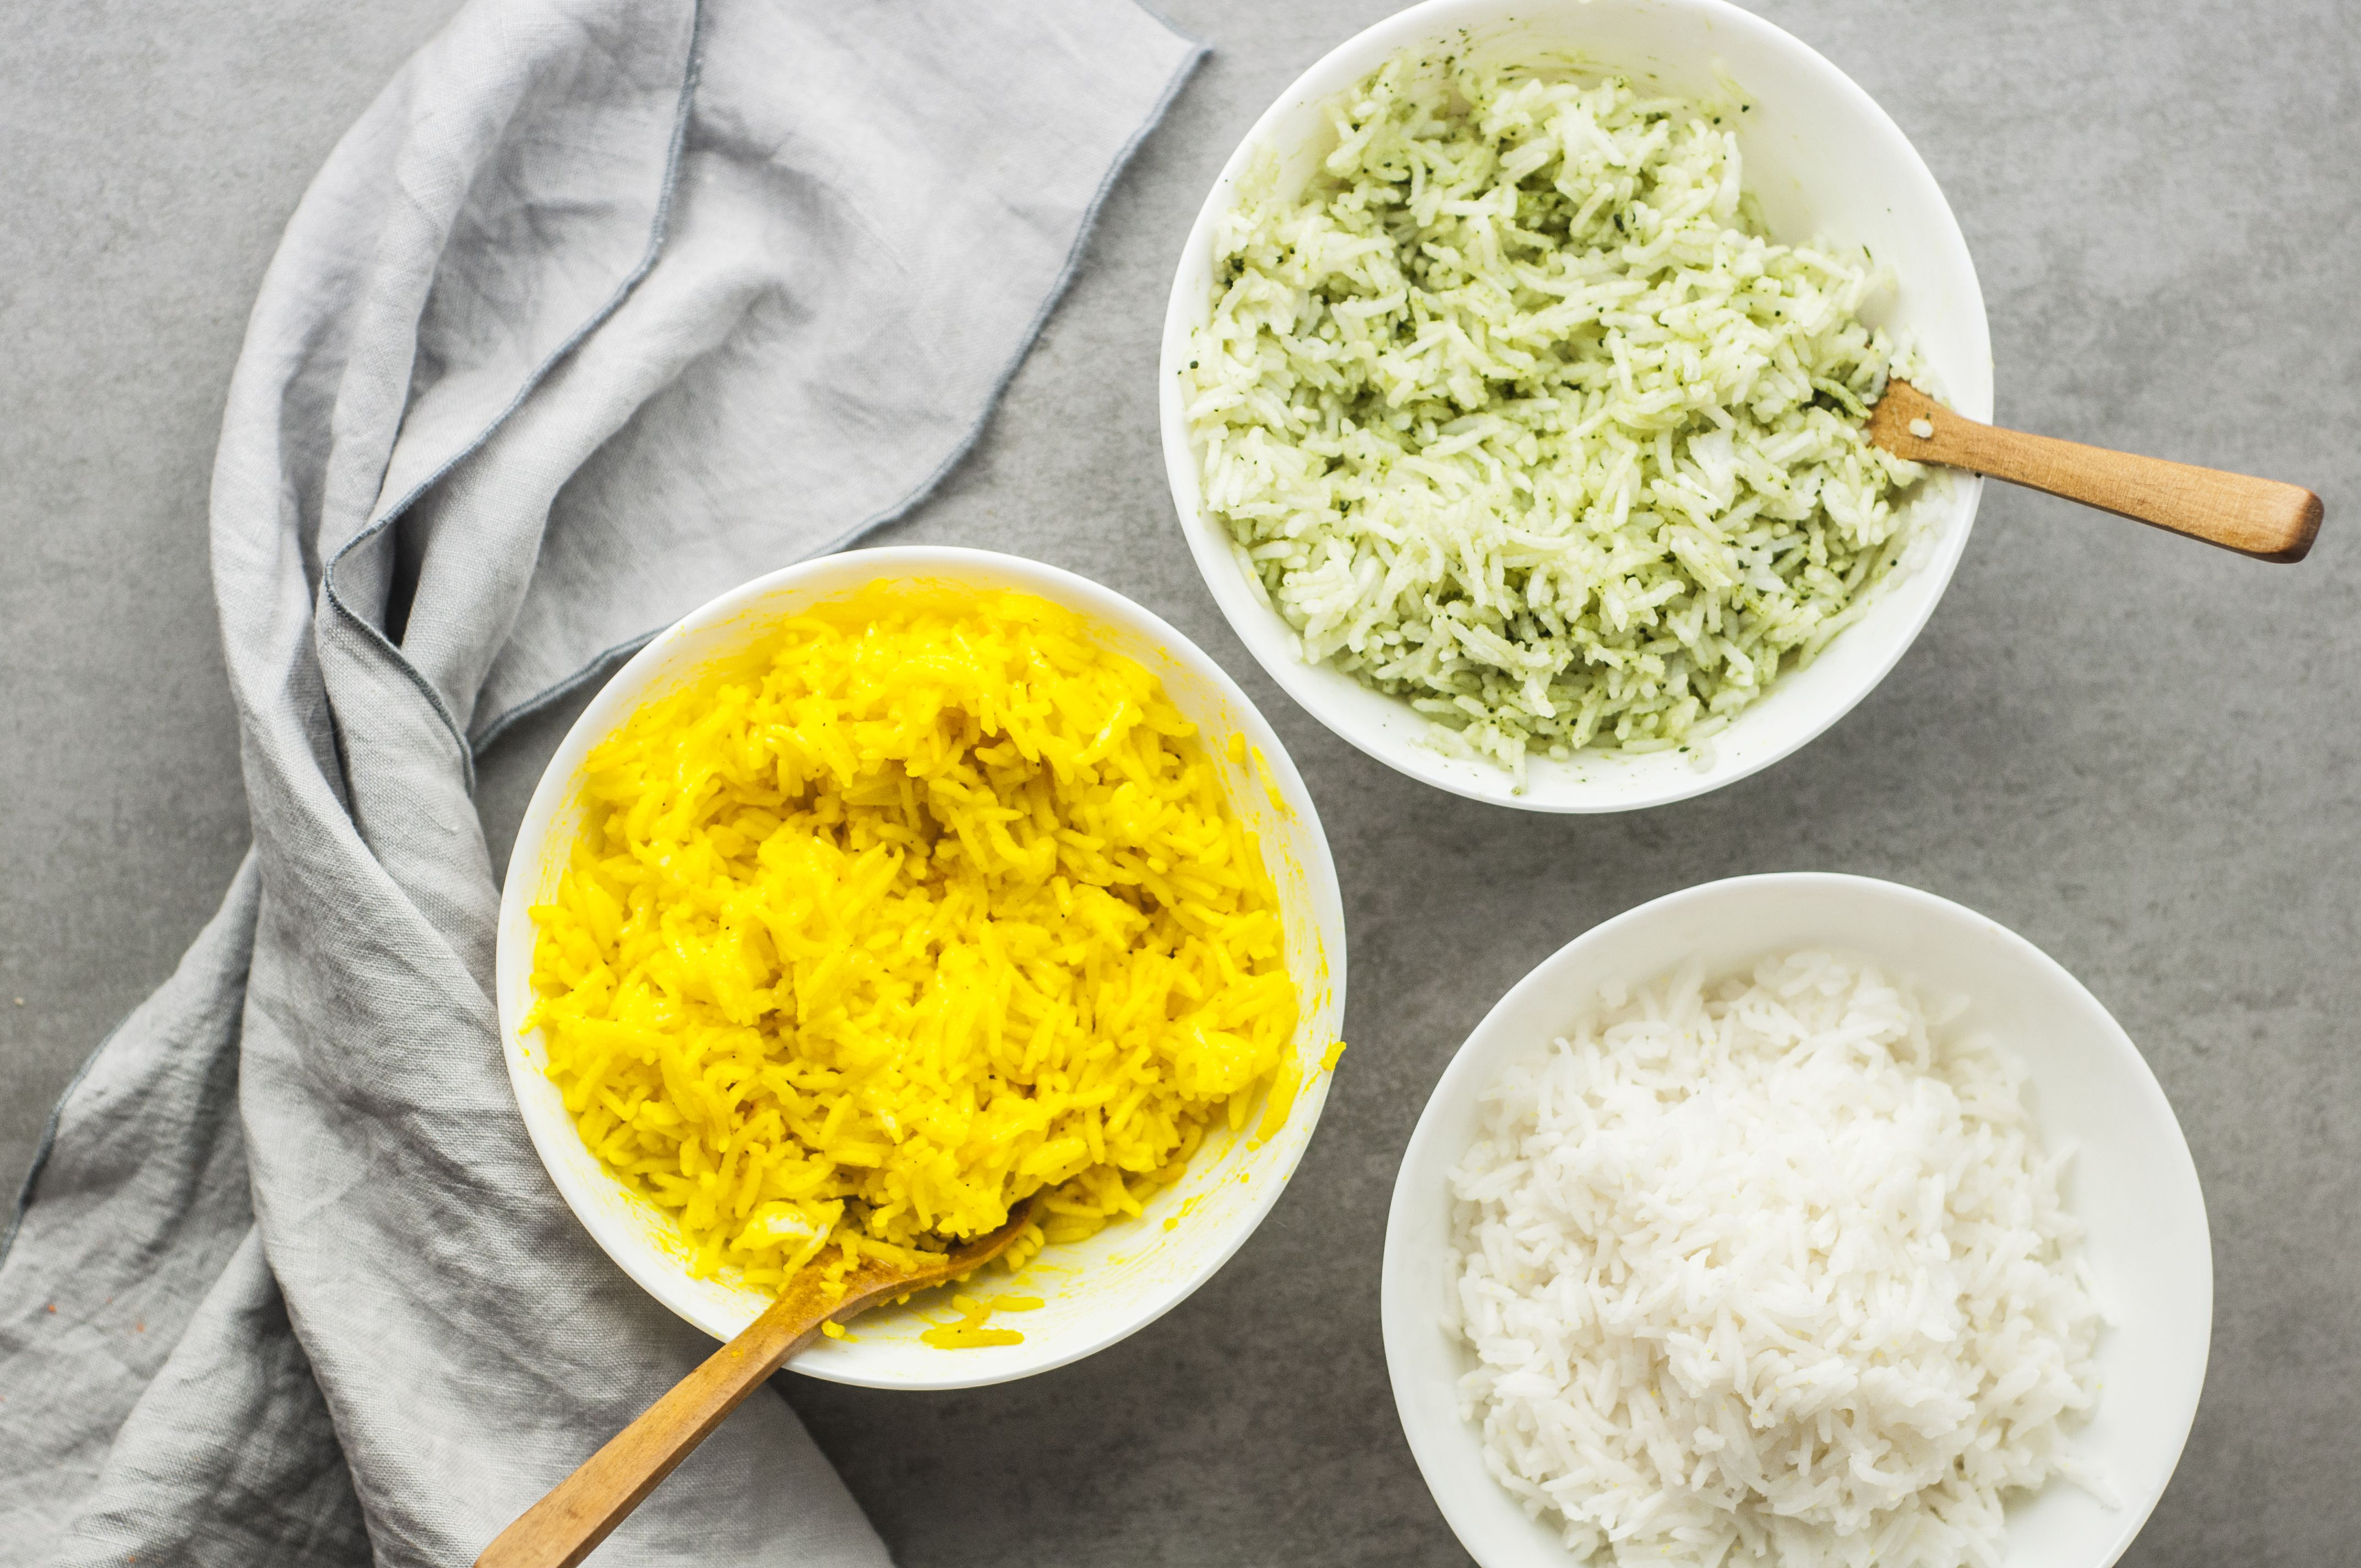 Mix rice with food coloring